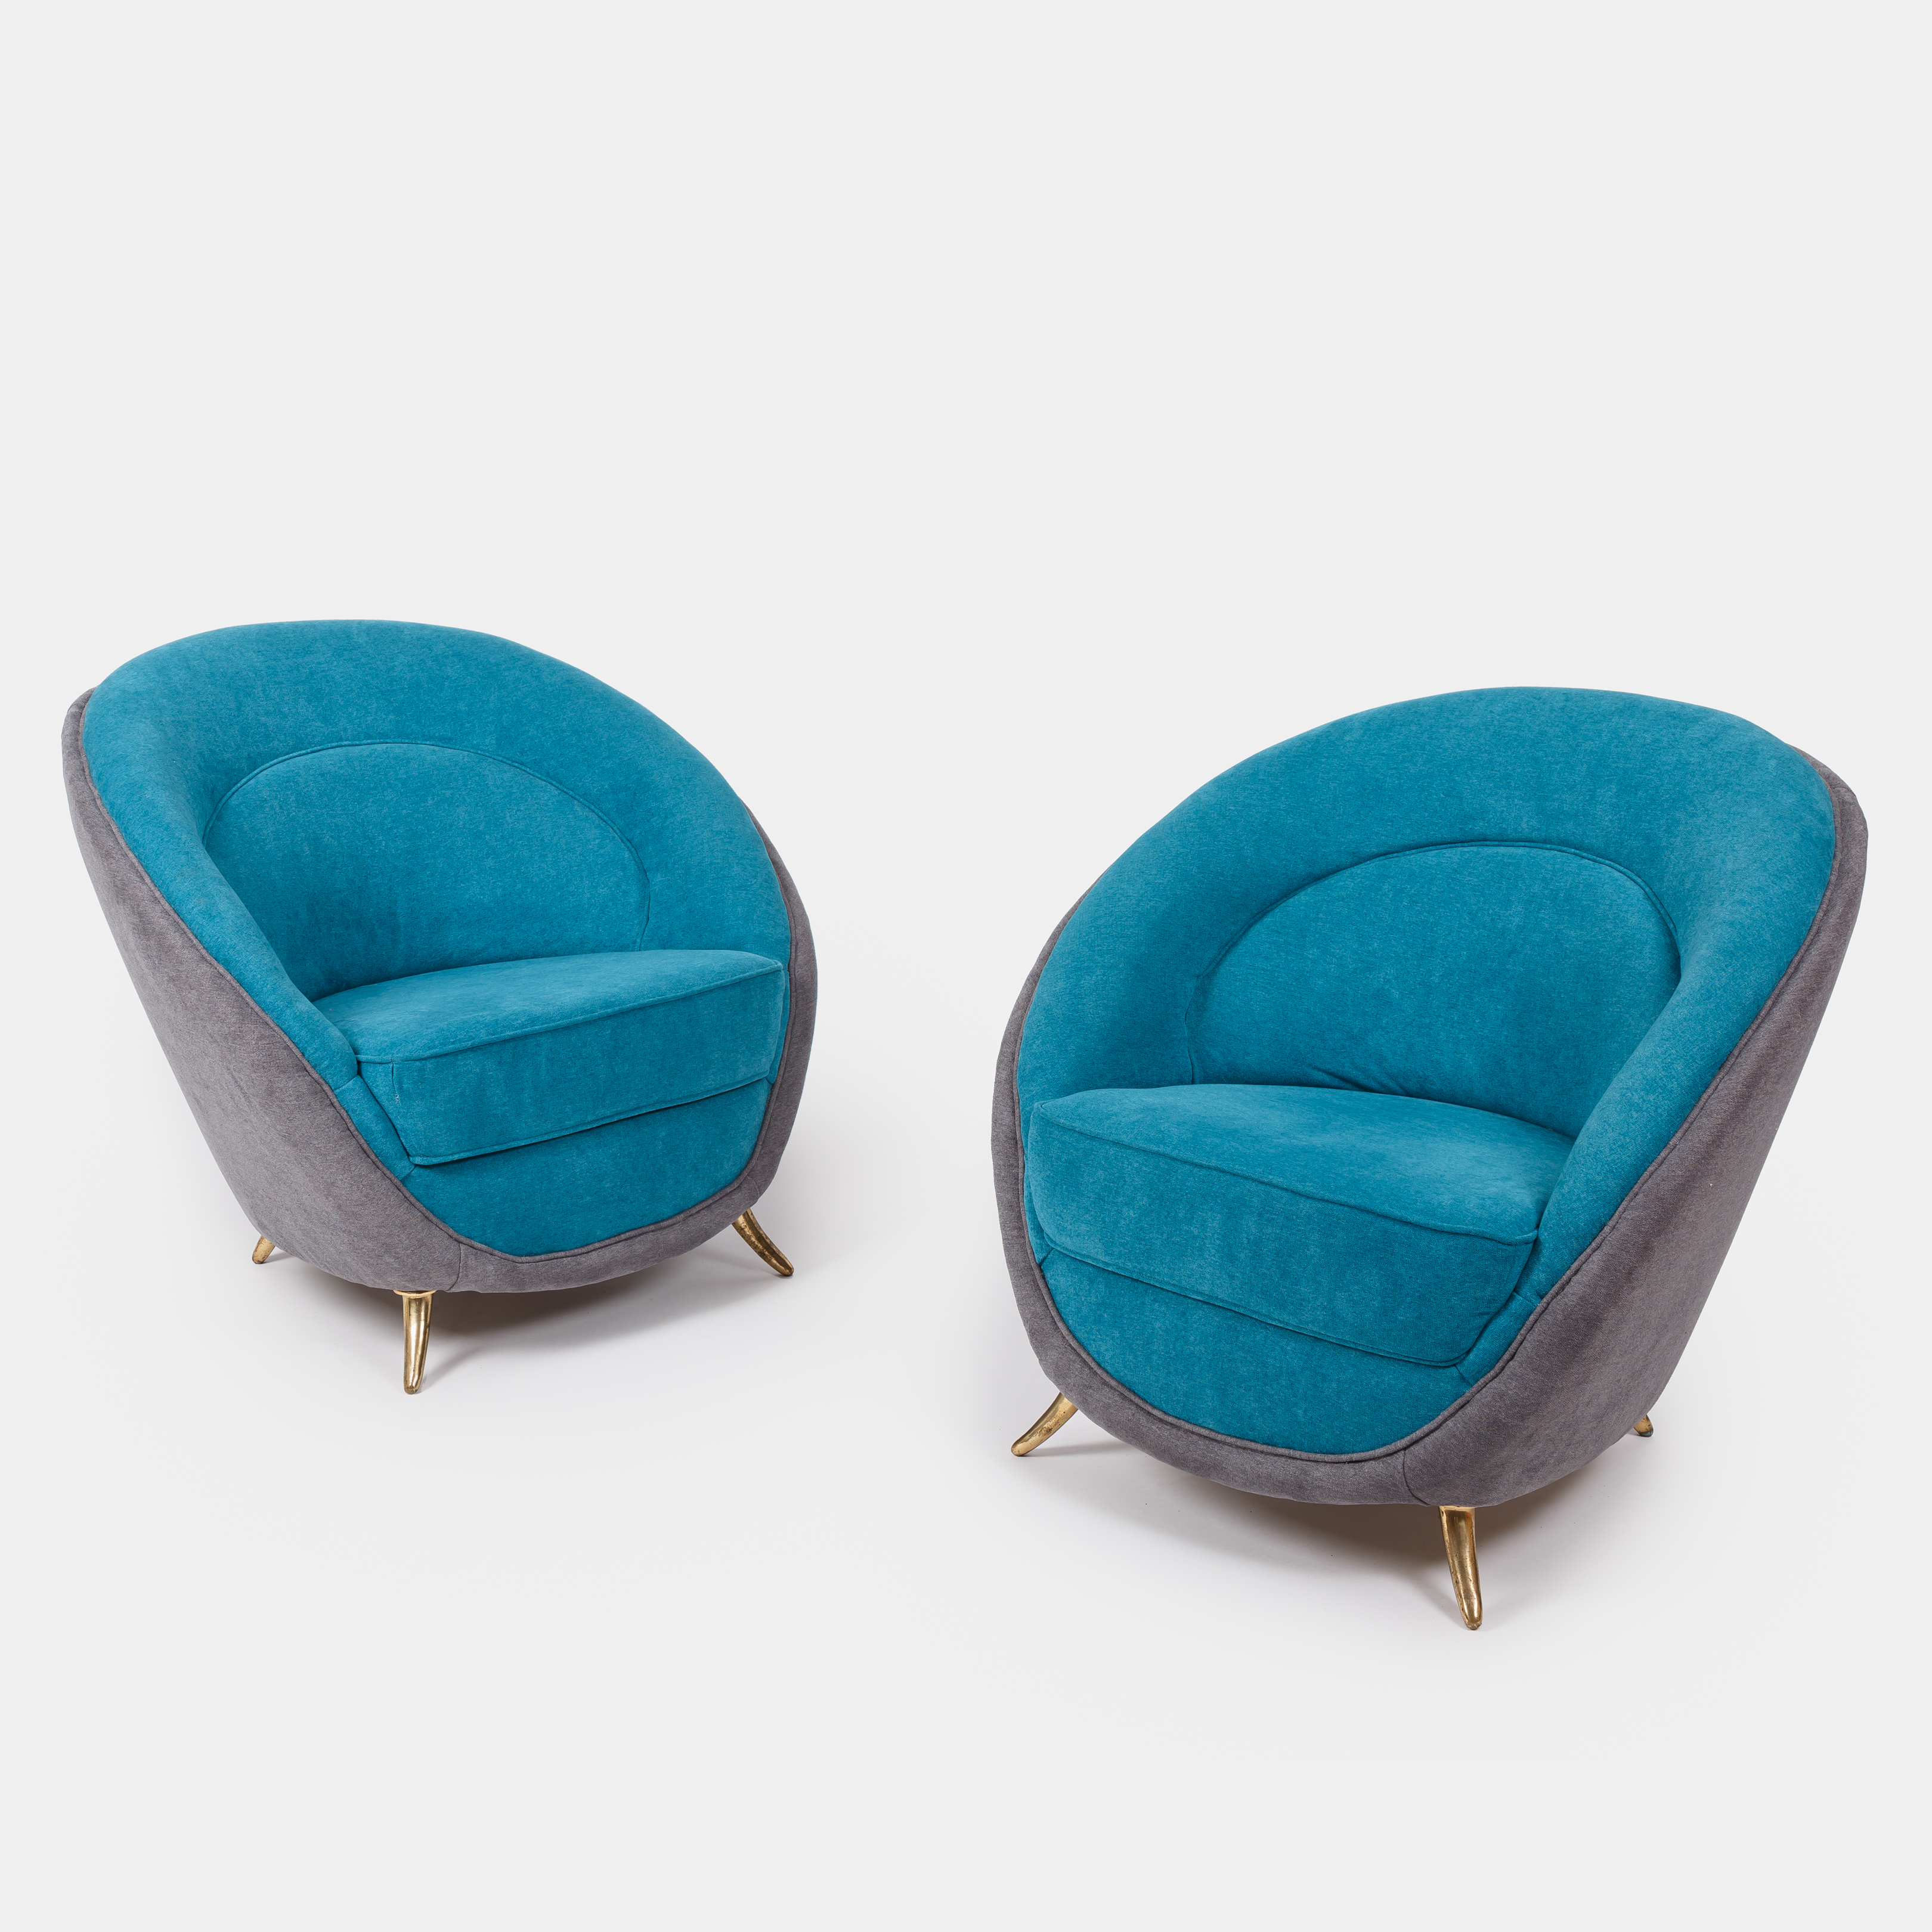 Pair of Armchairs by Guglielmo Veronesi for I.S.A. | soyun k.